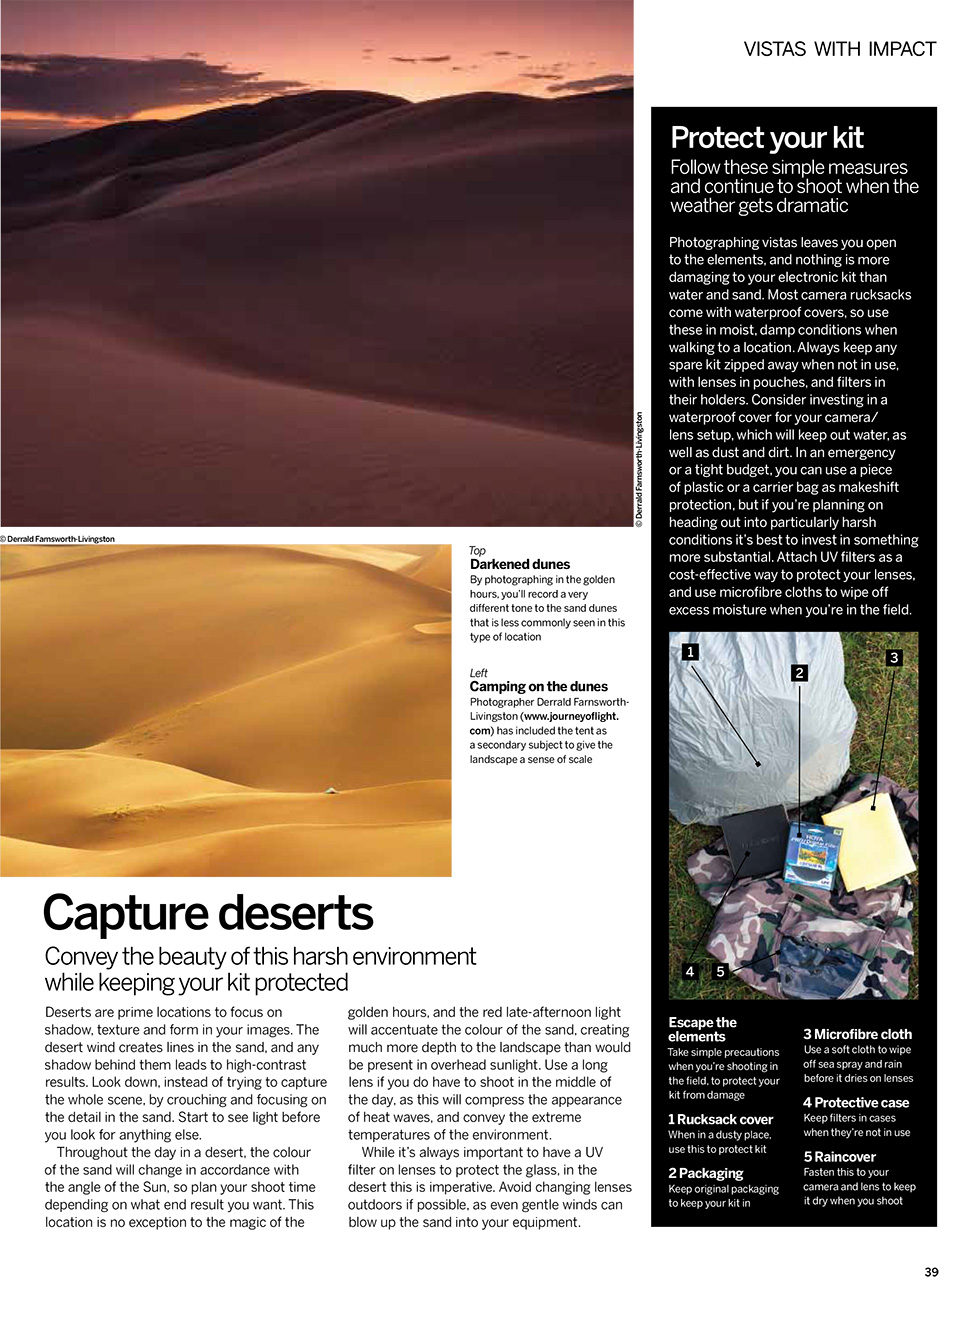 Vistas With Impact - Digital Photographer UK Article.  Contributed Photography (3 images). -  Picture